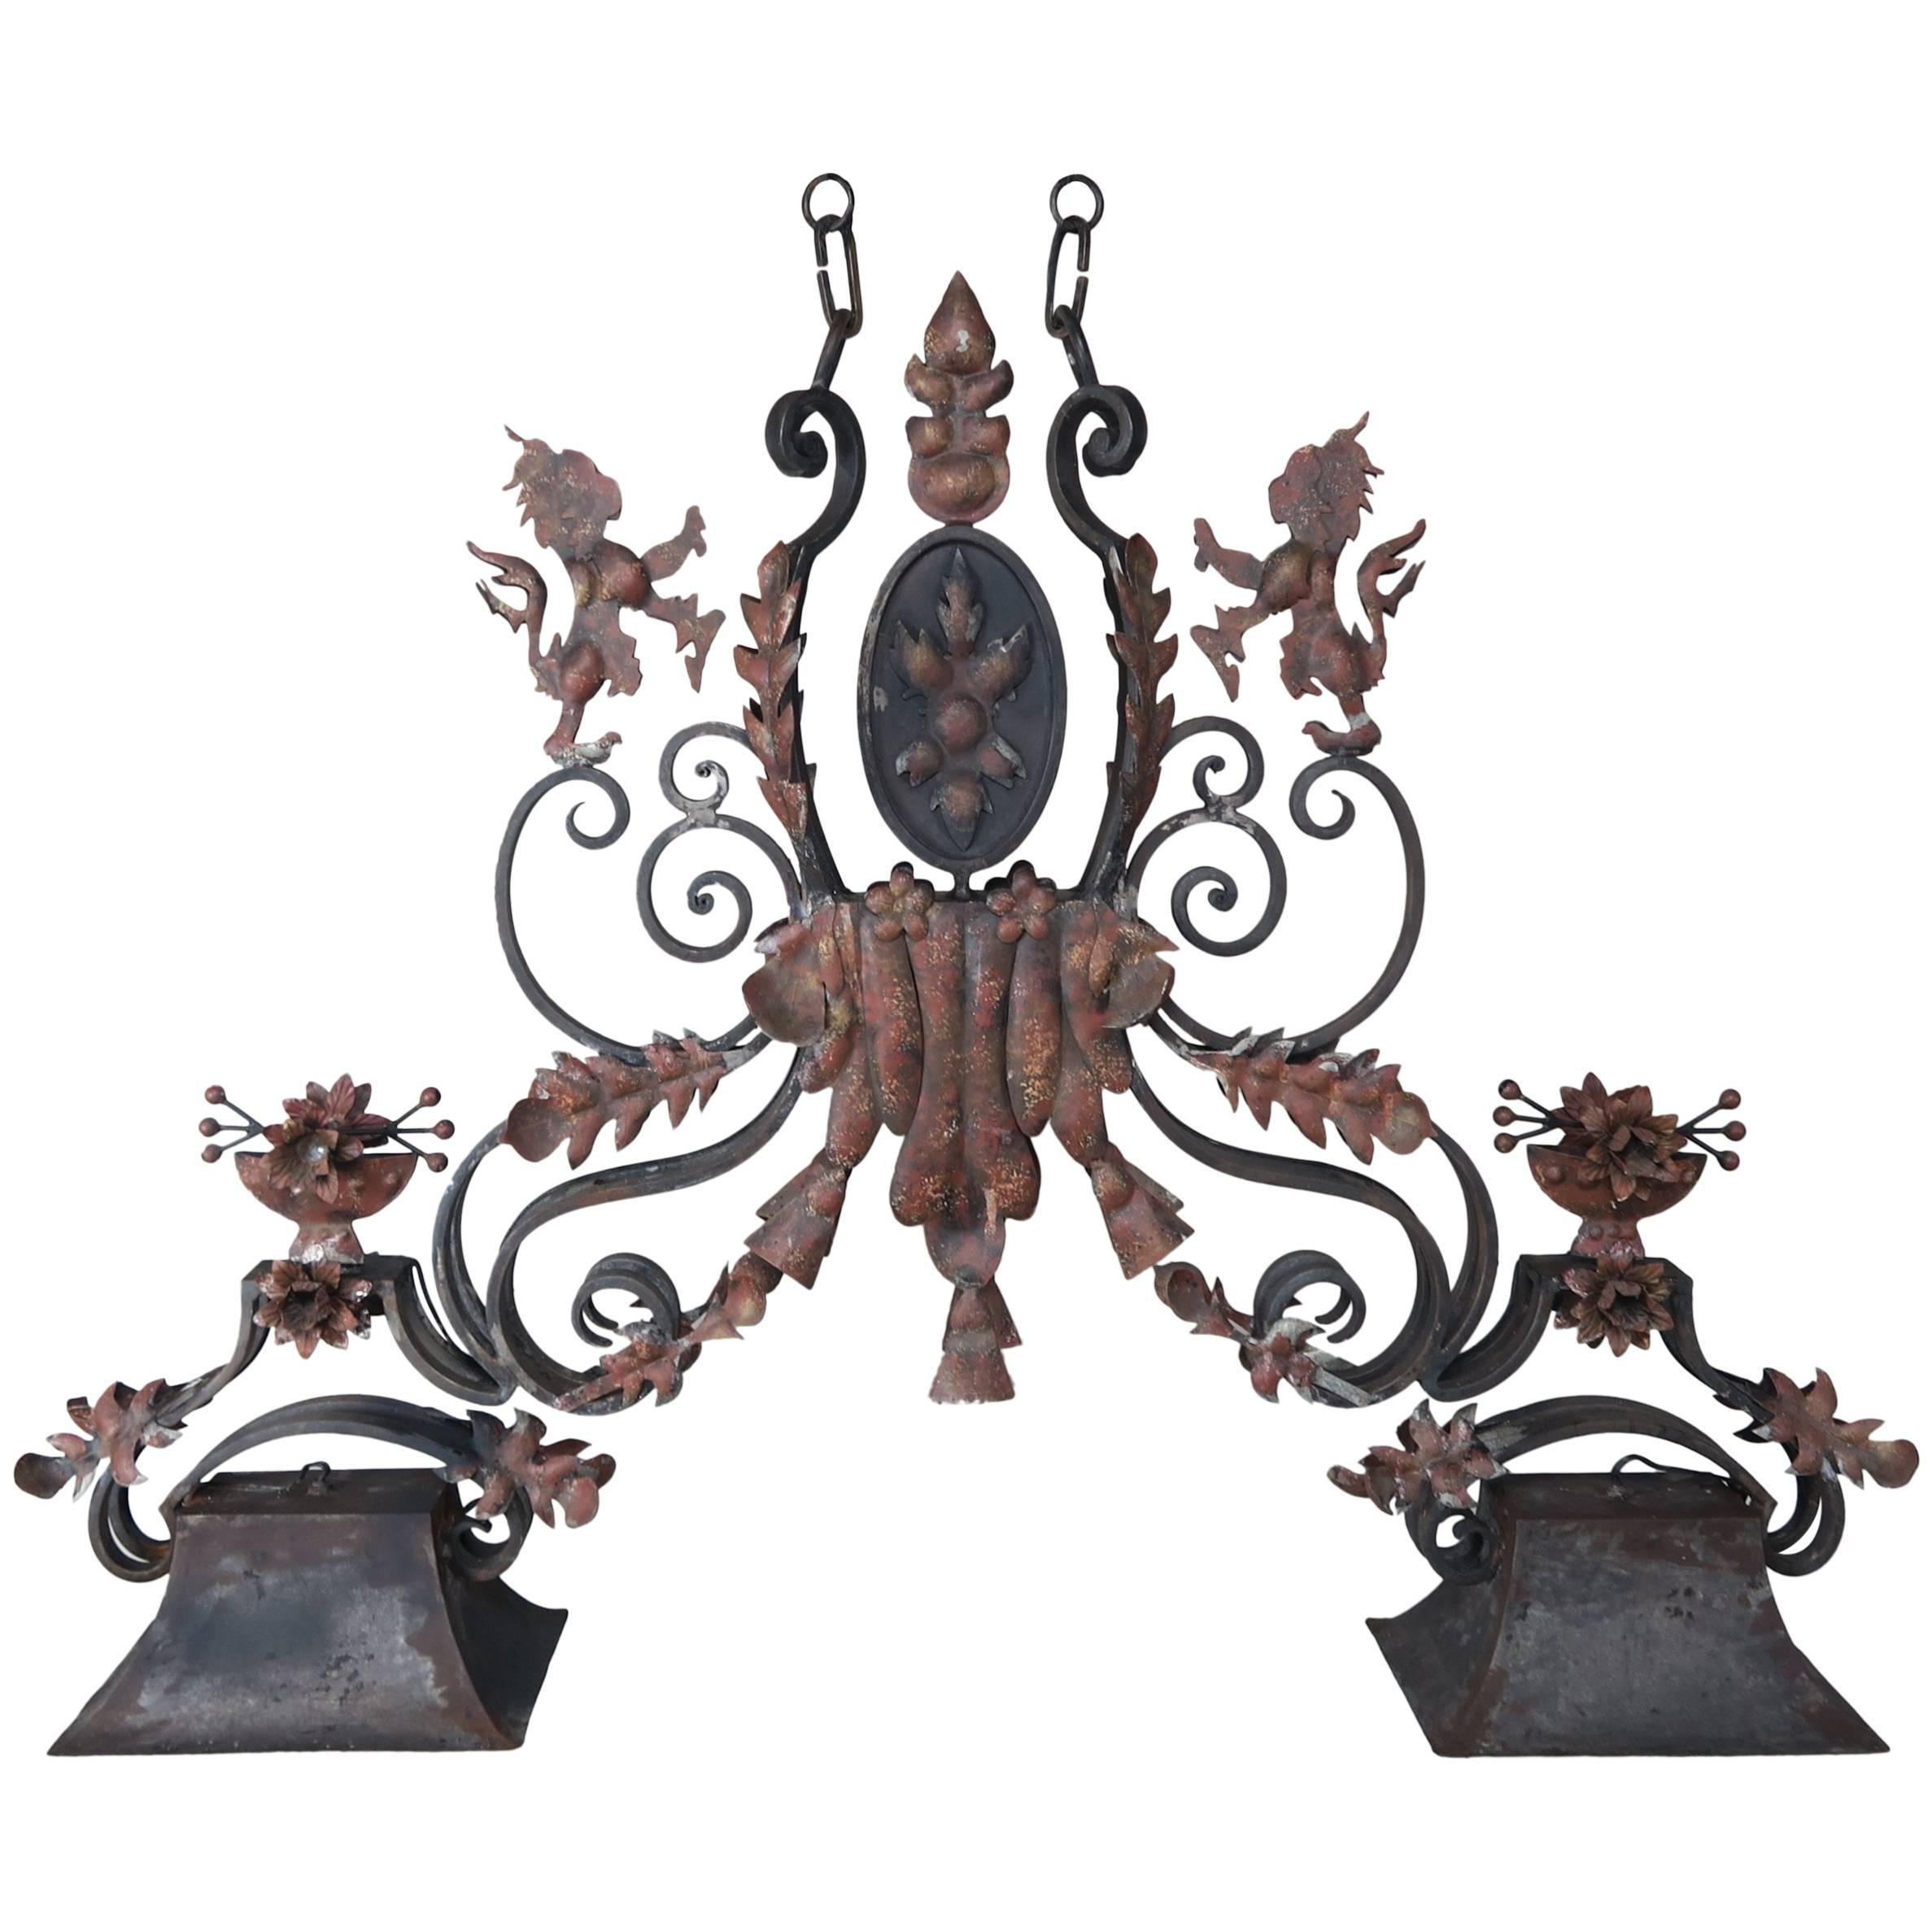 Charmant Wrought Iron French Billiard Table Light Fixture For Sale